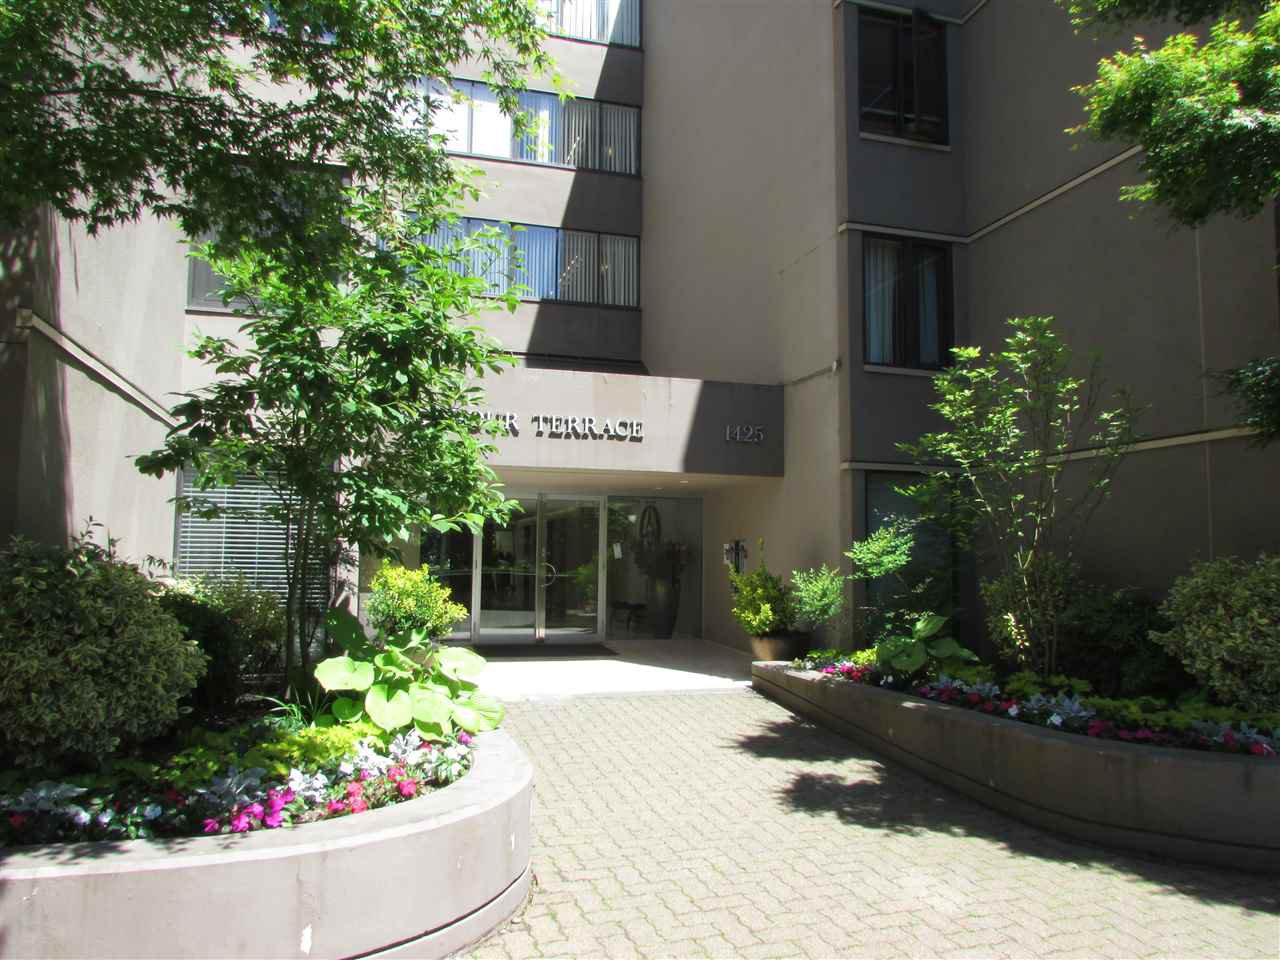 """Main Photo: 47 1425 LAMEY'S MILL Road in Vancouver: False Creek Condo for sale in """"HARBOUR TERRACE"""" (Vancouver West)  : MLS®# R2322379"""